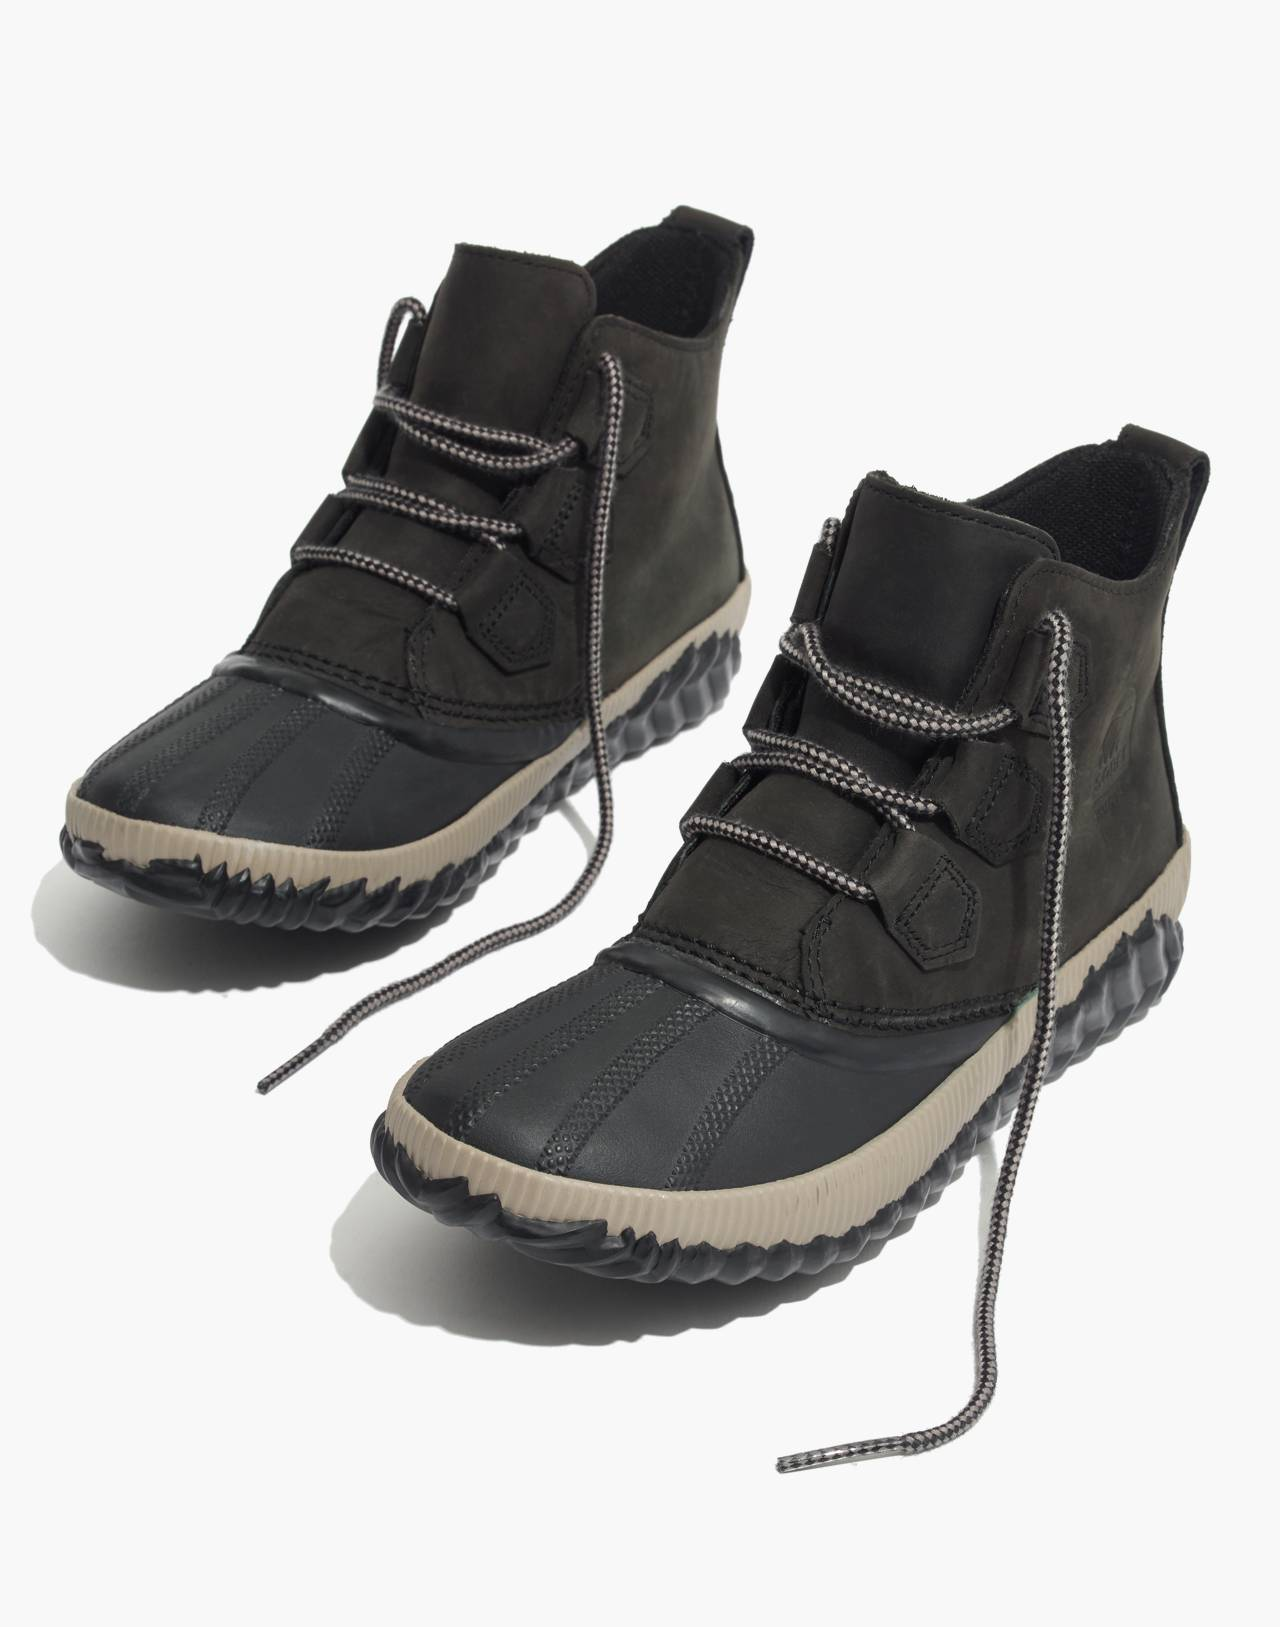 Sorel® Out N About™ Plus Boots in black image 1